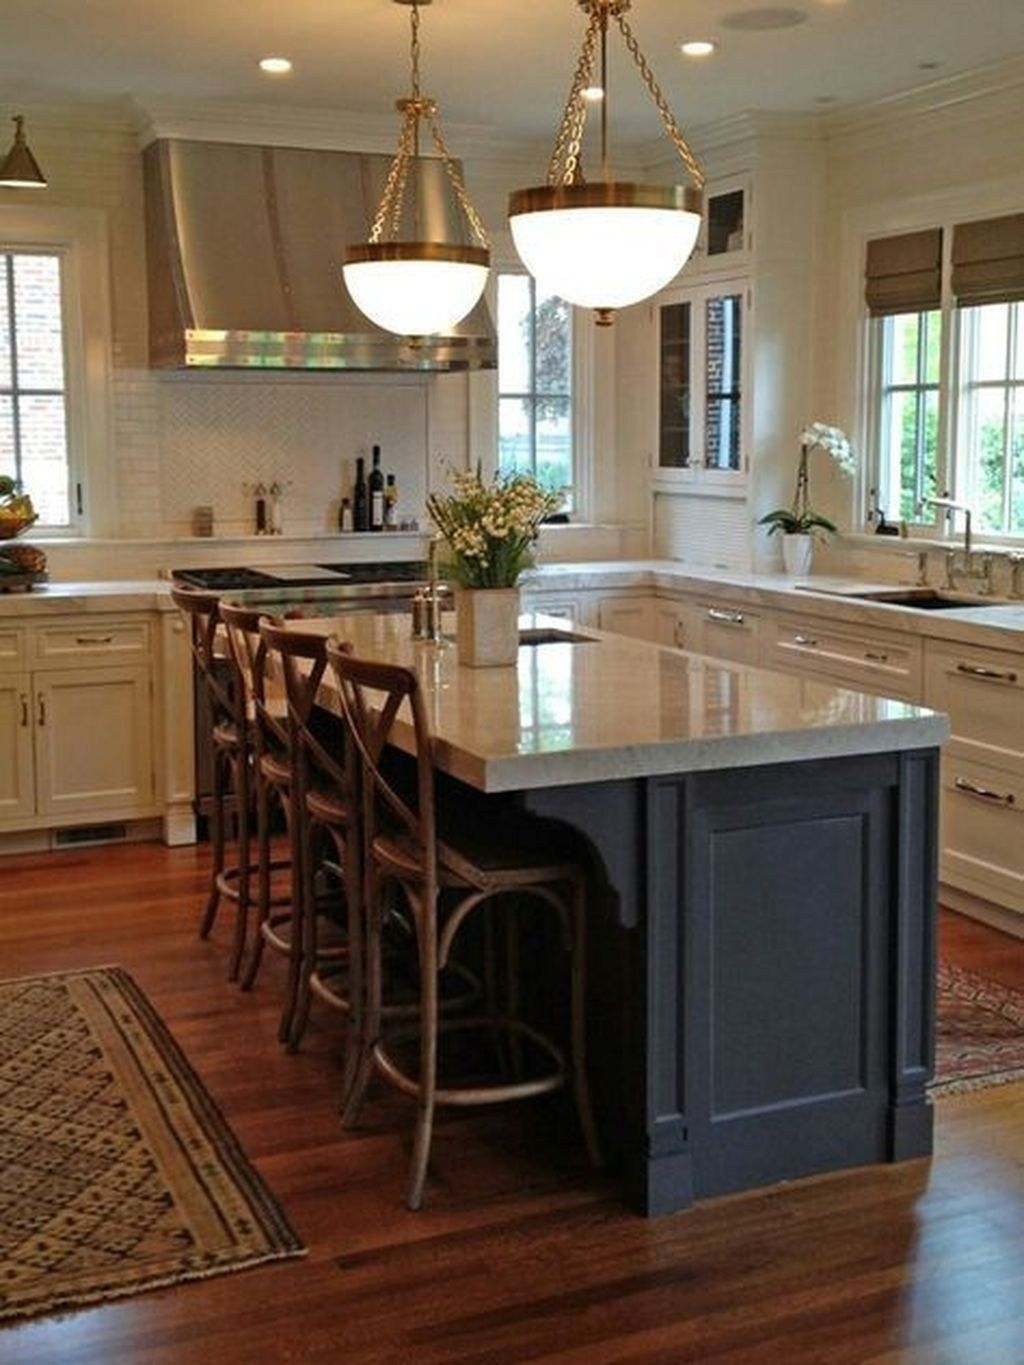 trending kitchen island ideas with seating 20 rustic kitchen island stools for kitchen island on kitchen island ideas small layout id=56213